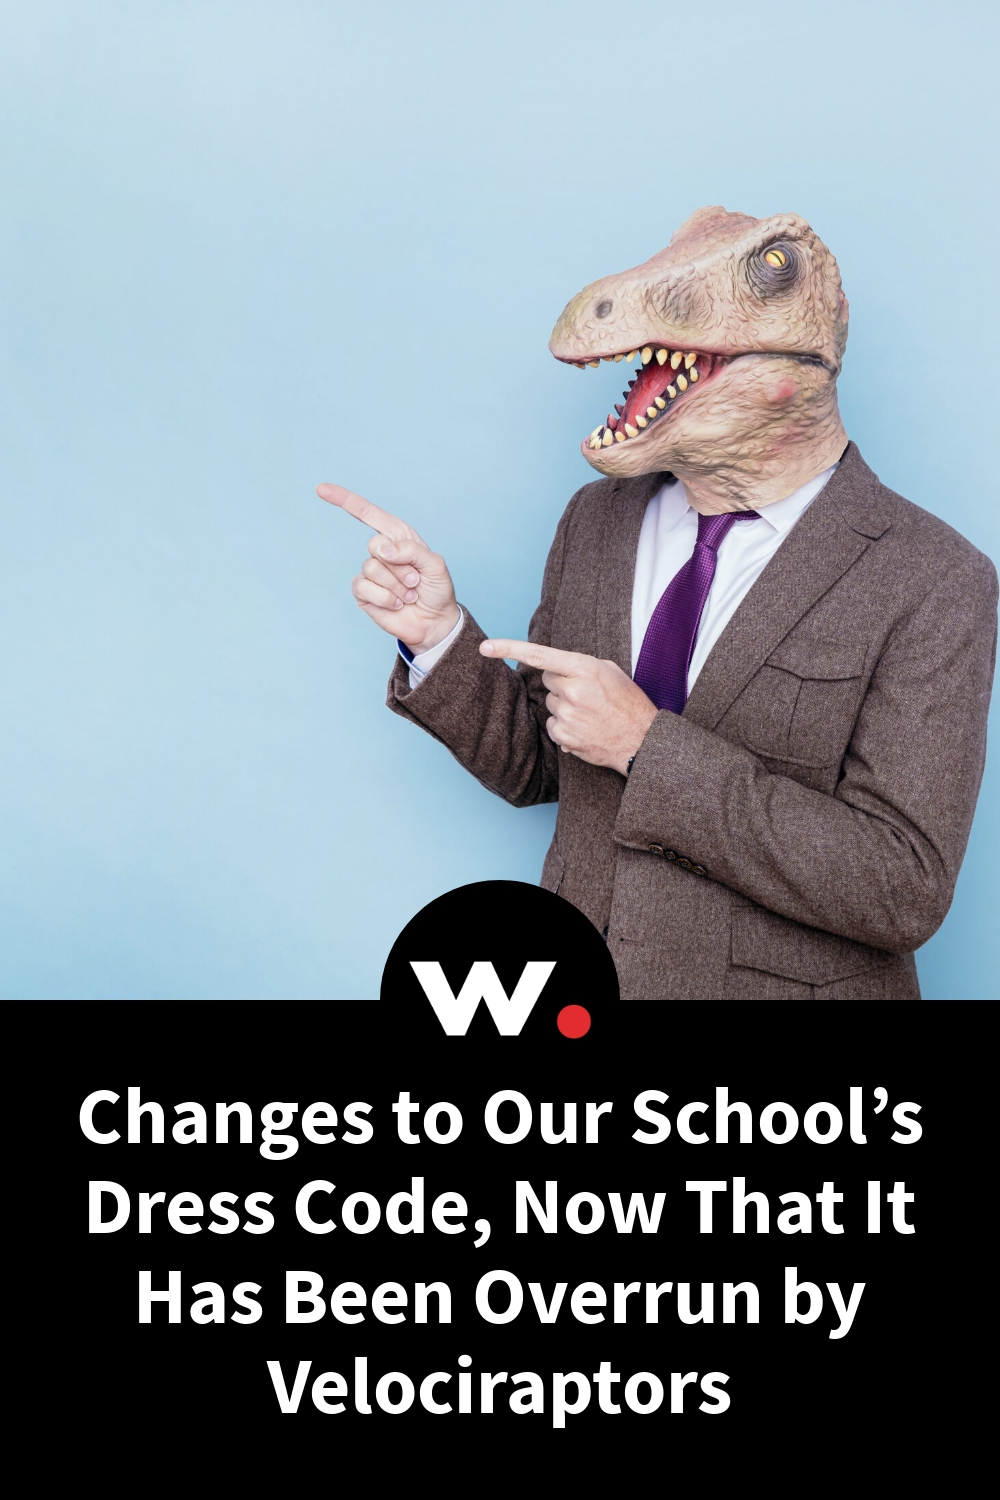 Changes to Our School's Dress Code, Now That It Has Been Overrun by Velociraptors